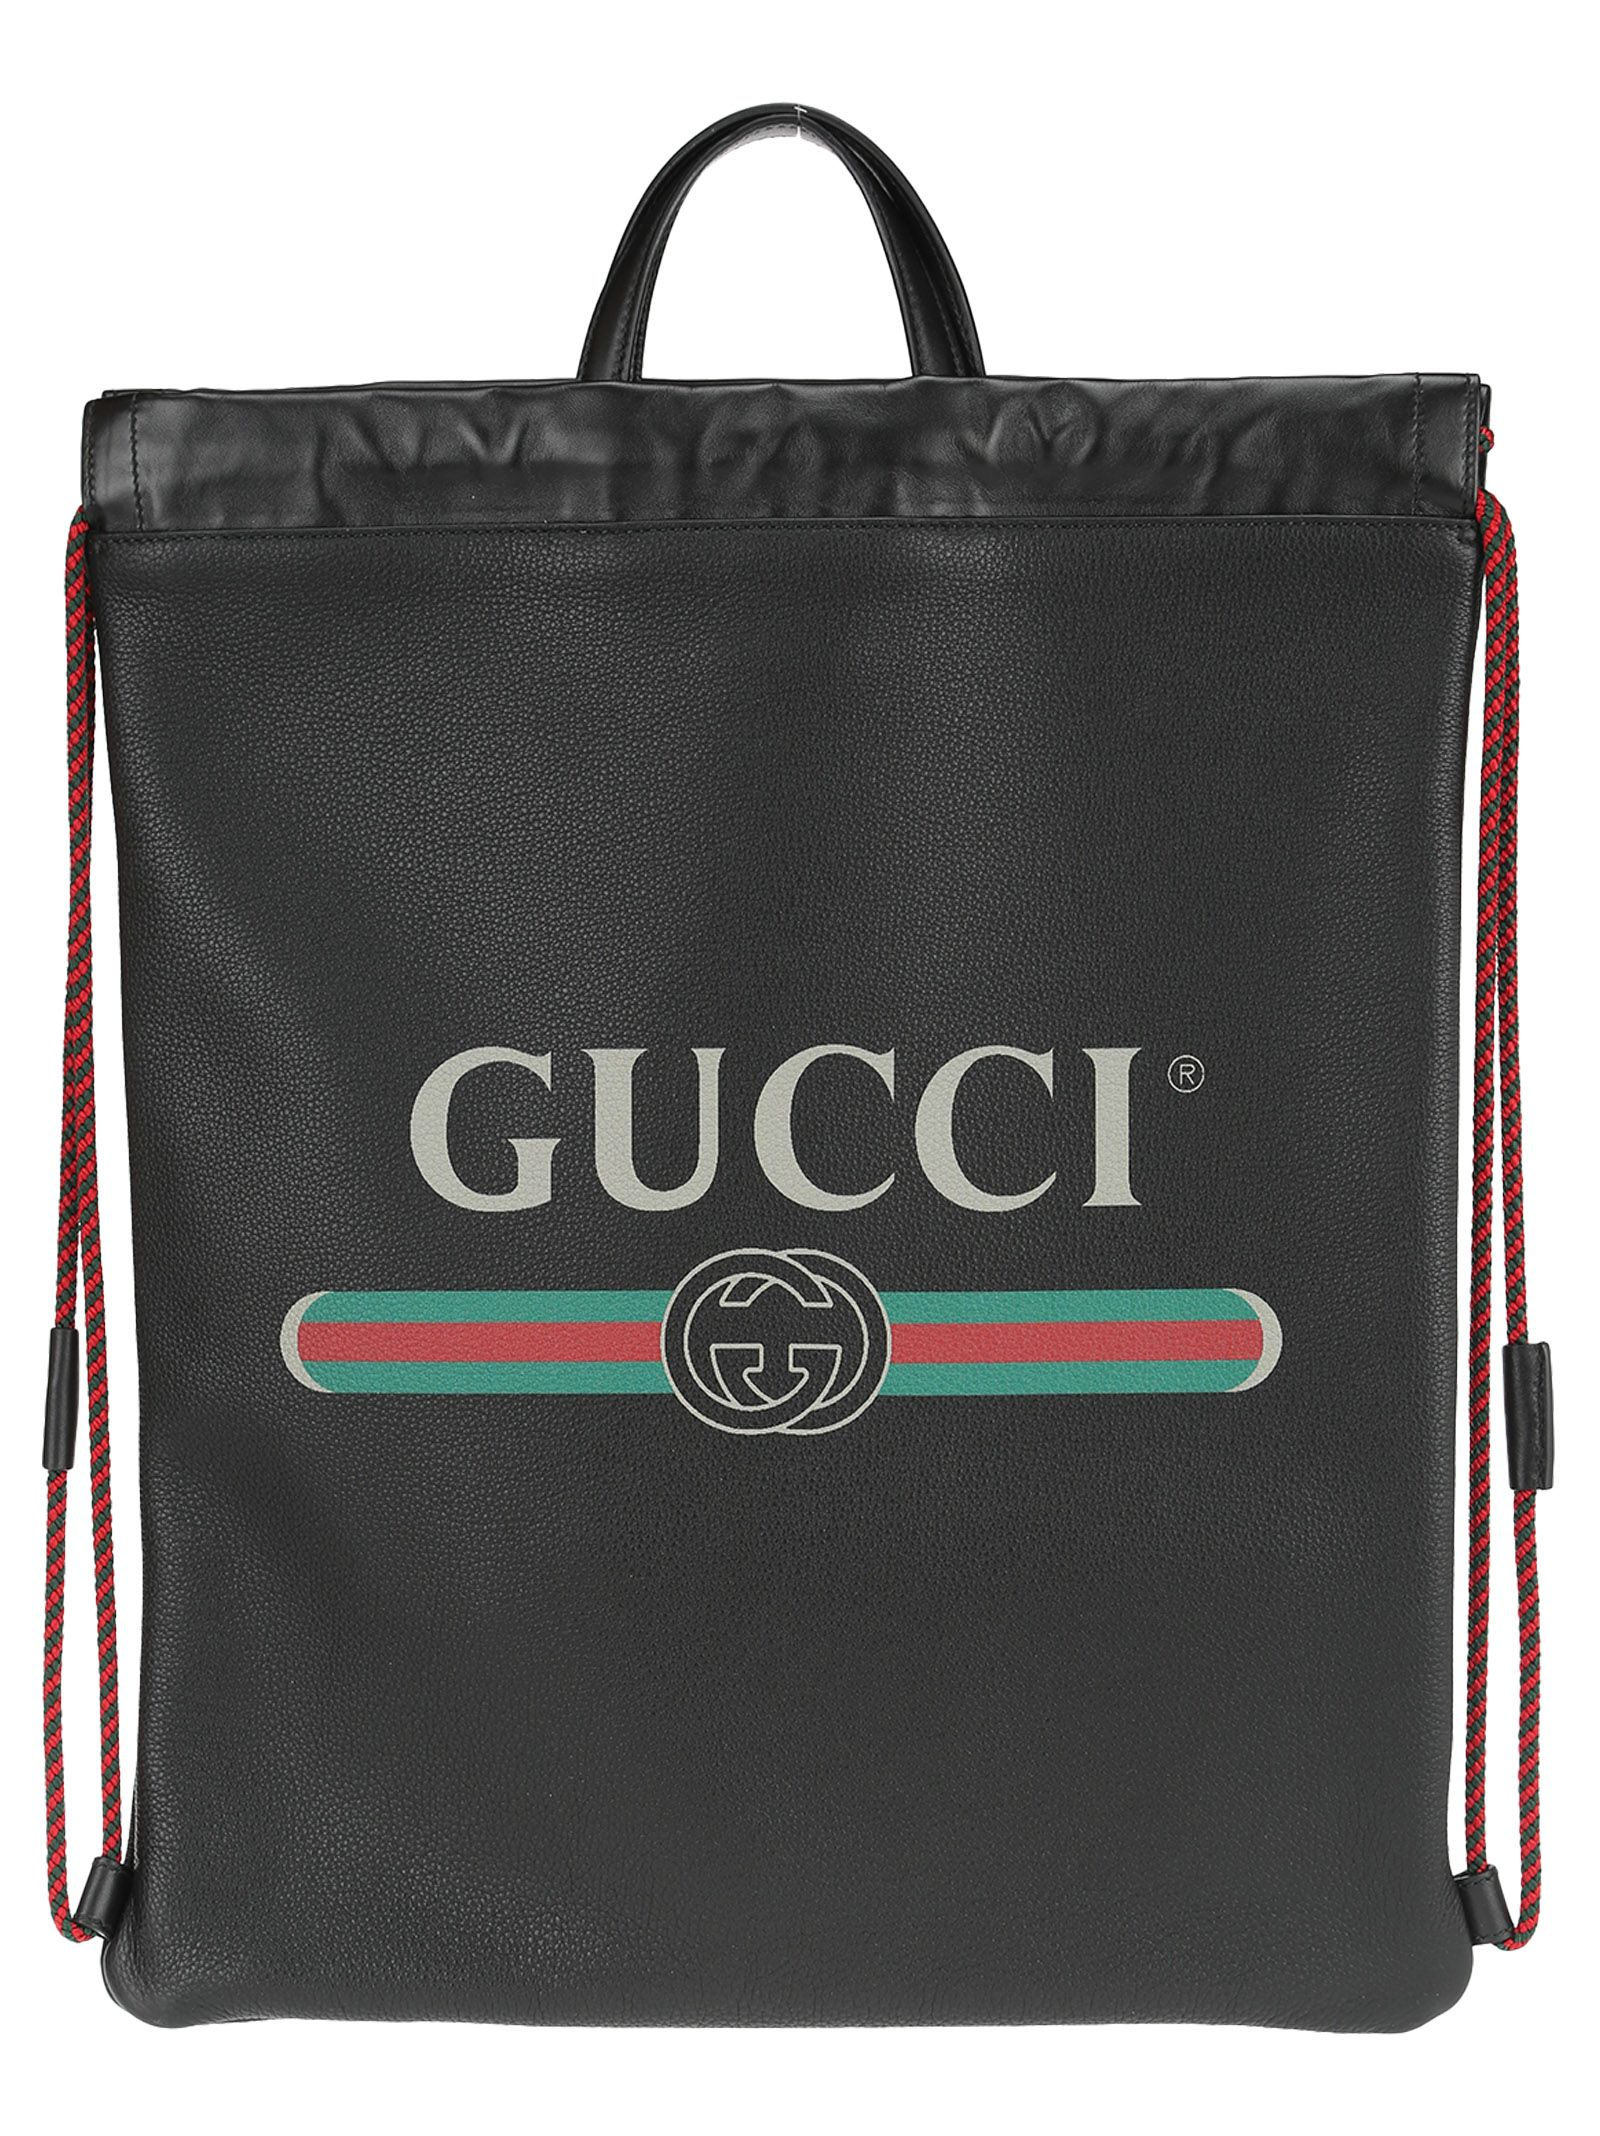 ab6b9ba244de gucci backpack - 90 offers from $28.05